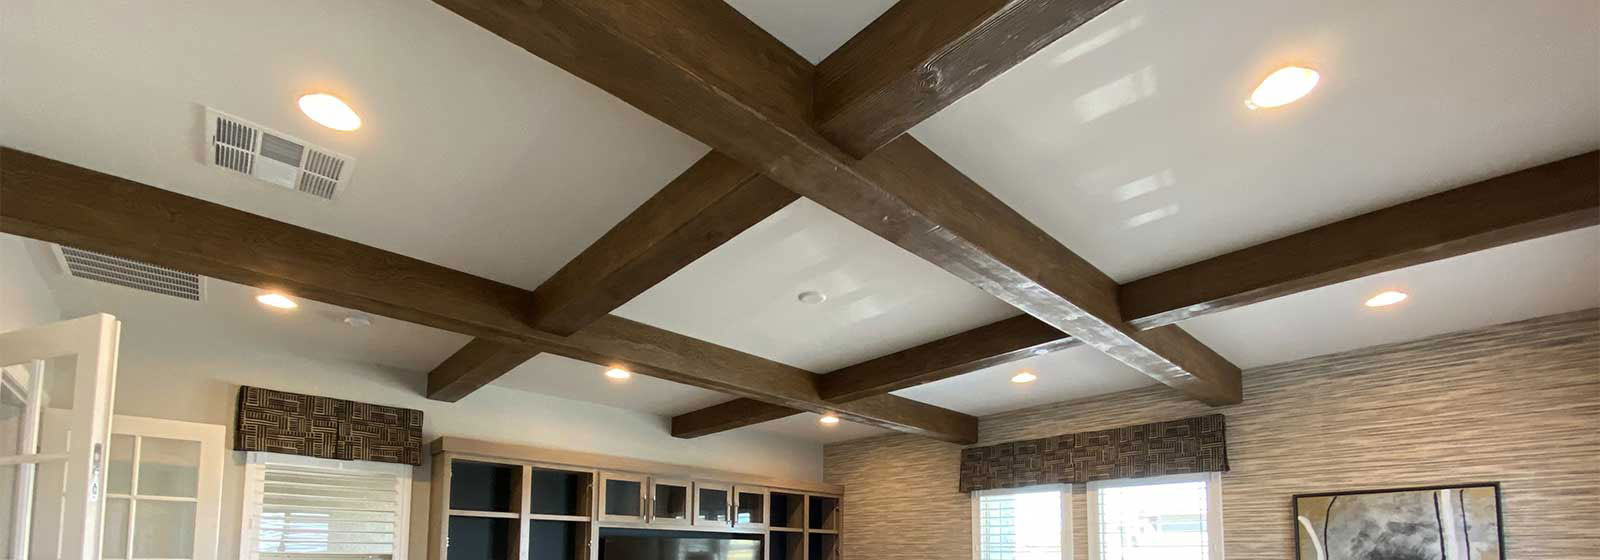 Faux Beams & Wood Beams